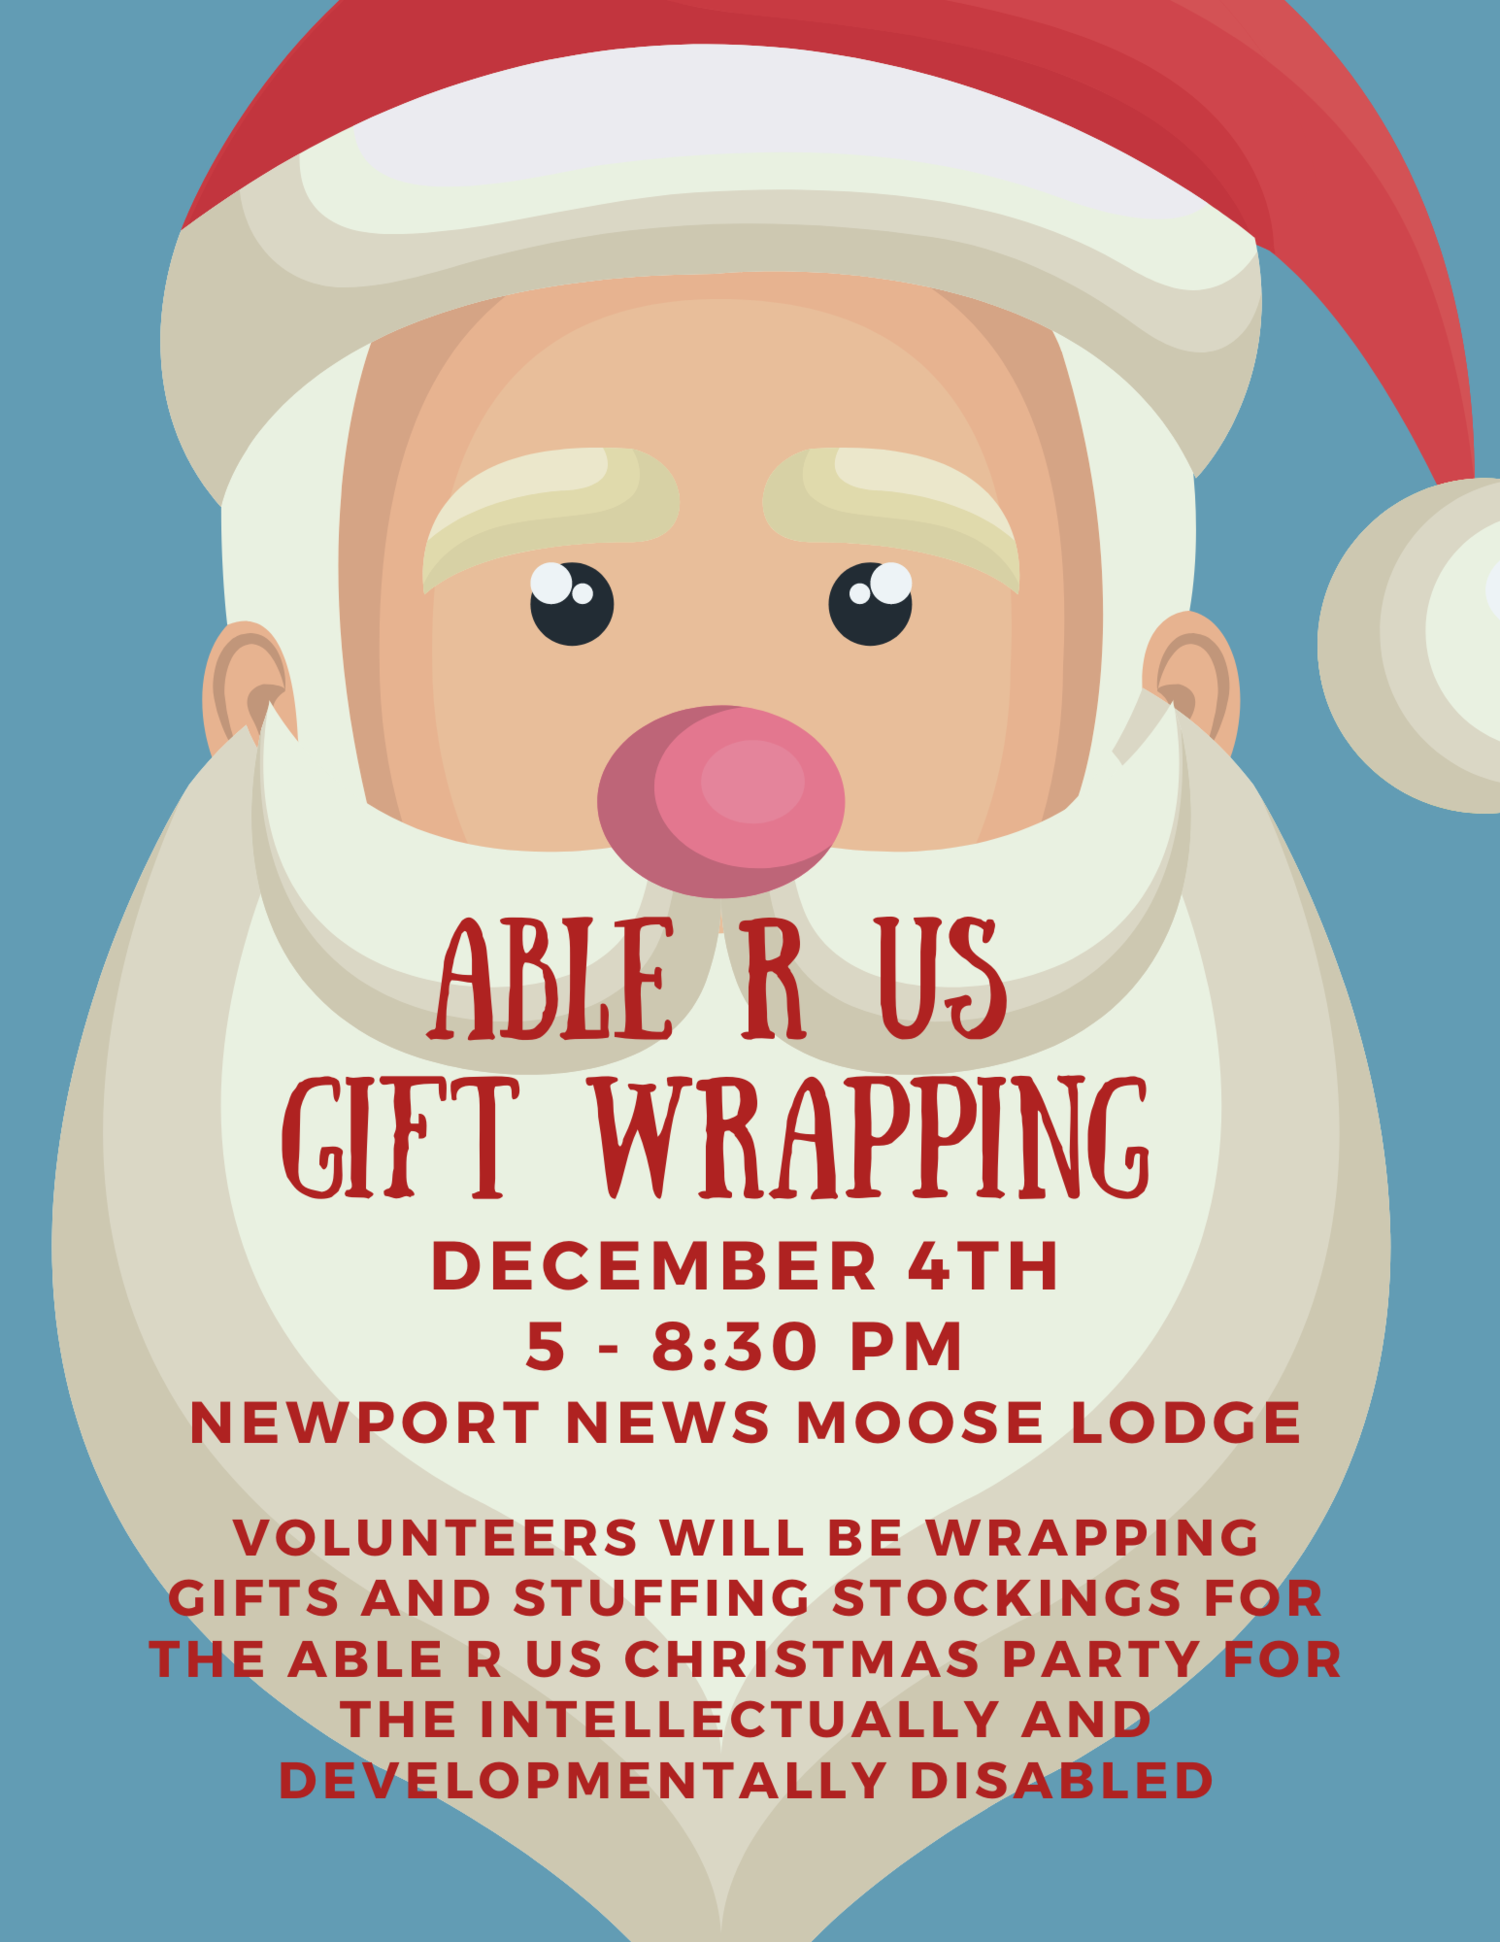 Able R Us Gift Wrapping Yvchr